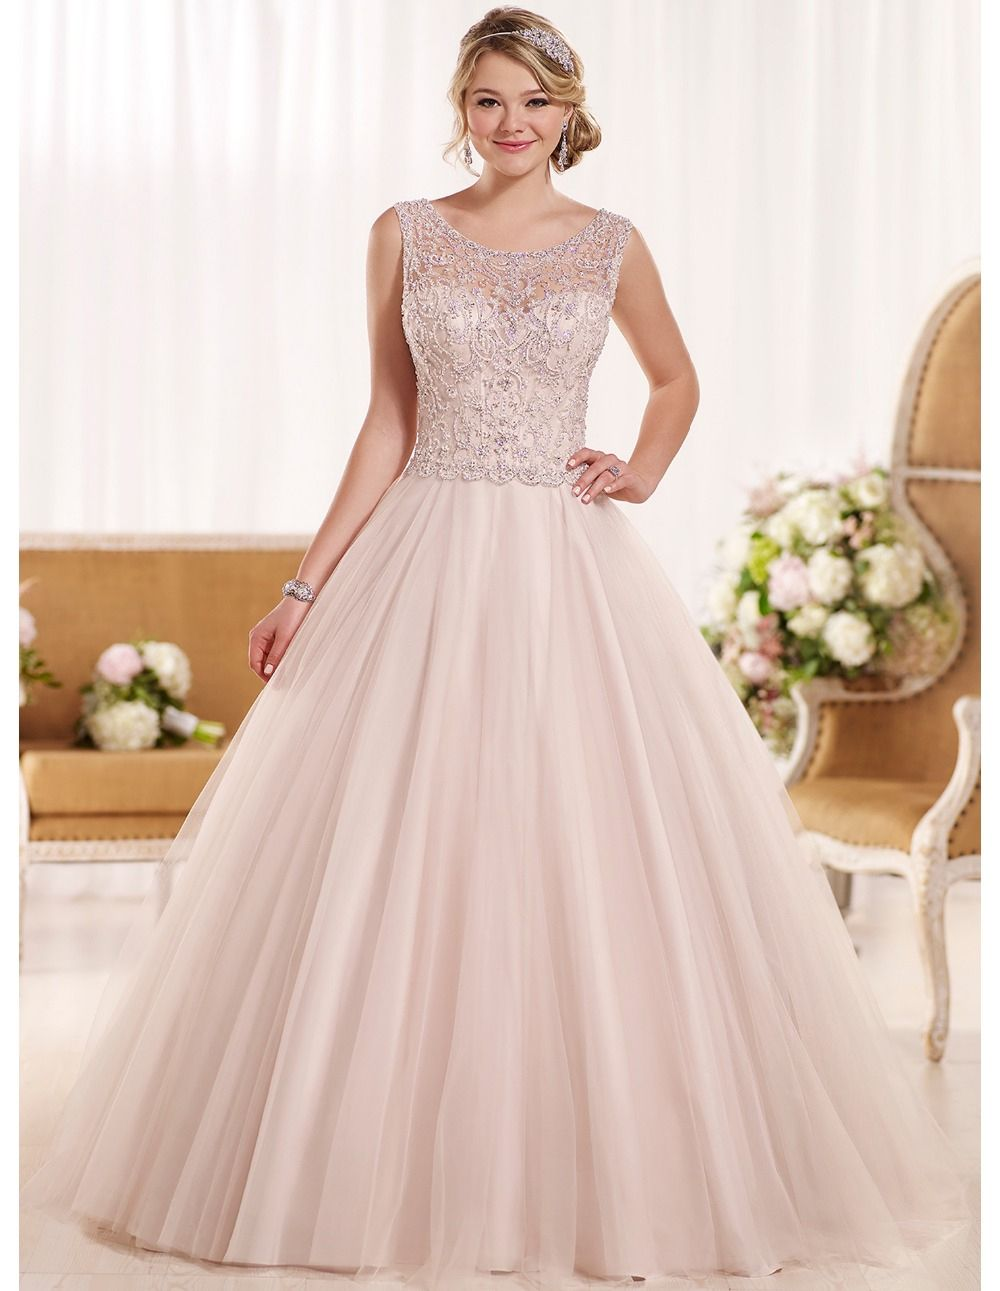 Plus Size Dresses For Wedding Guests Uk | Toffee Art